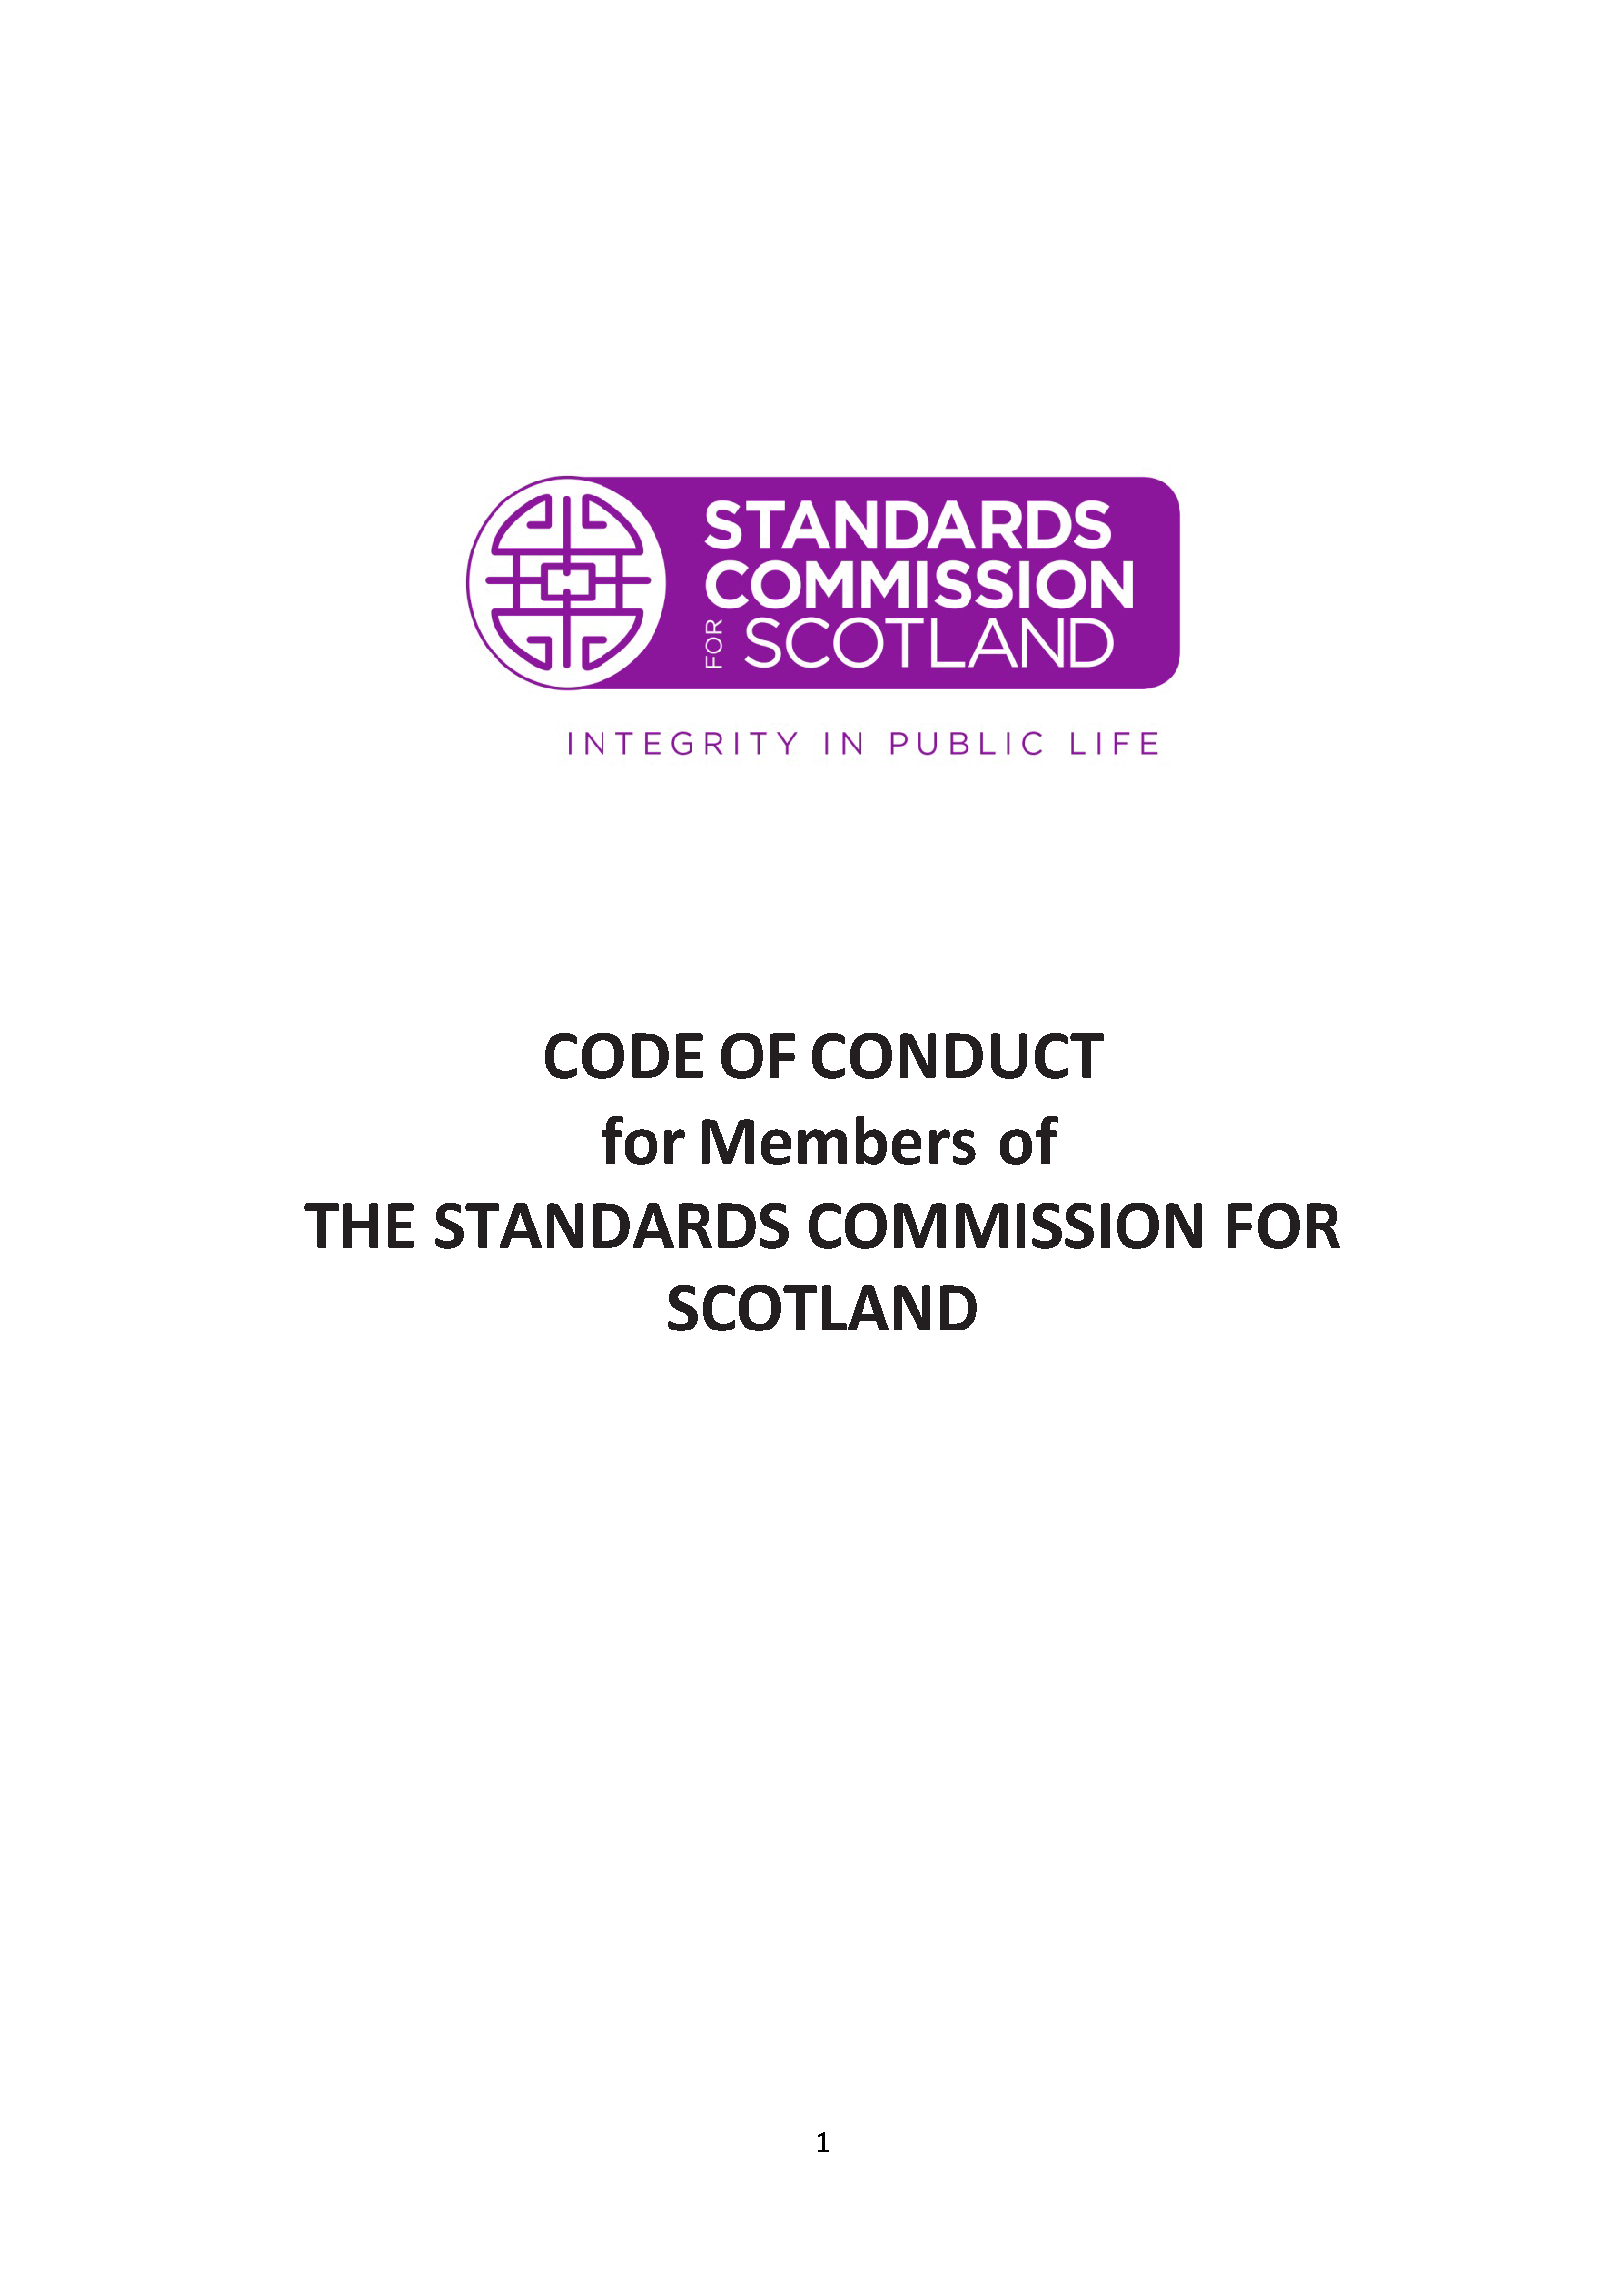 Code of Conduct for Standards Commission Members